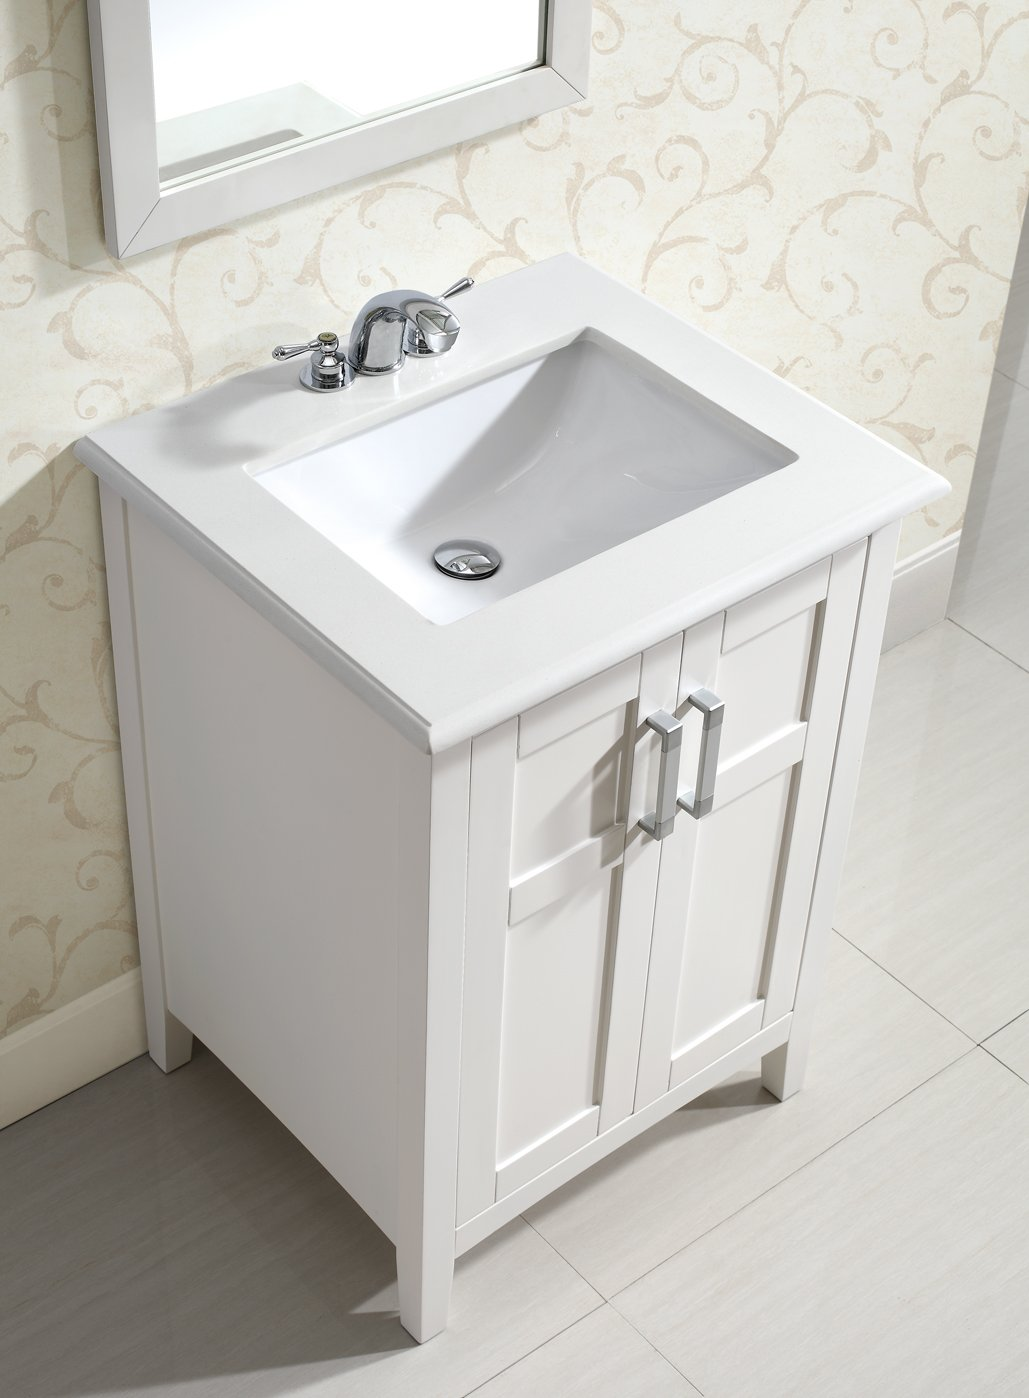 24 in bathroom vanity with sink. Simpli Home Winston 24  Bath Vanity with Quartz Marble Top White Sinks Amazon com